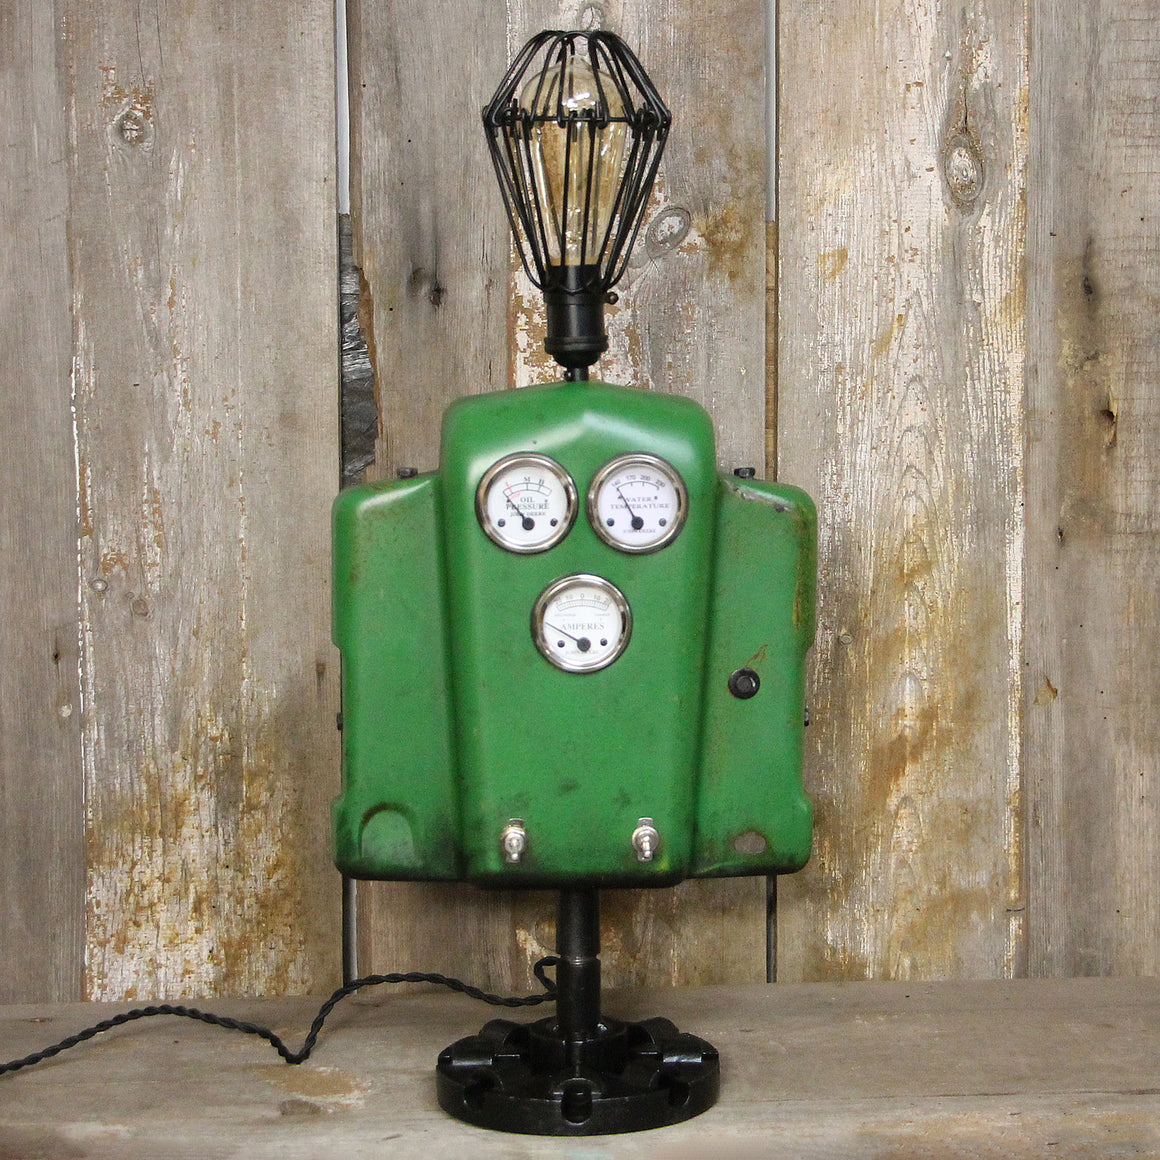 Vintage John Deere Lover's Industrial Table Lamp #38a - The Lighting Works